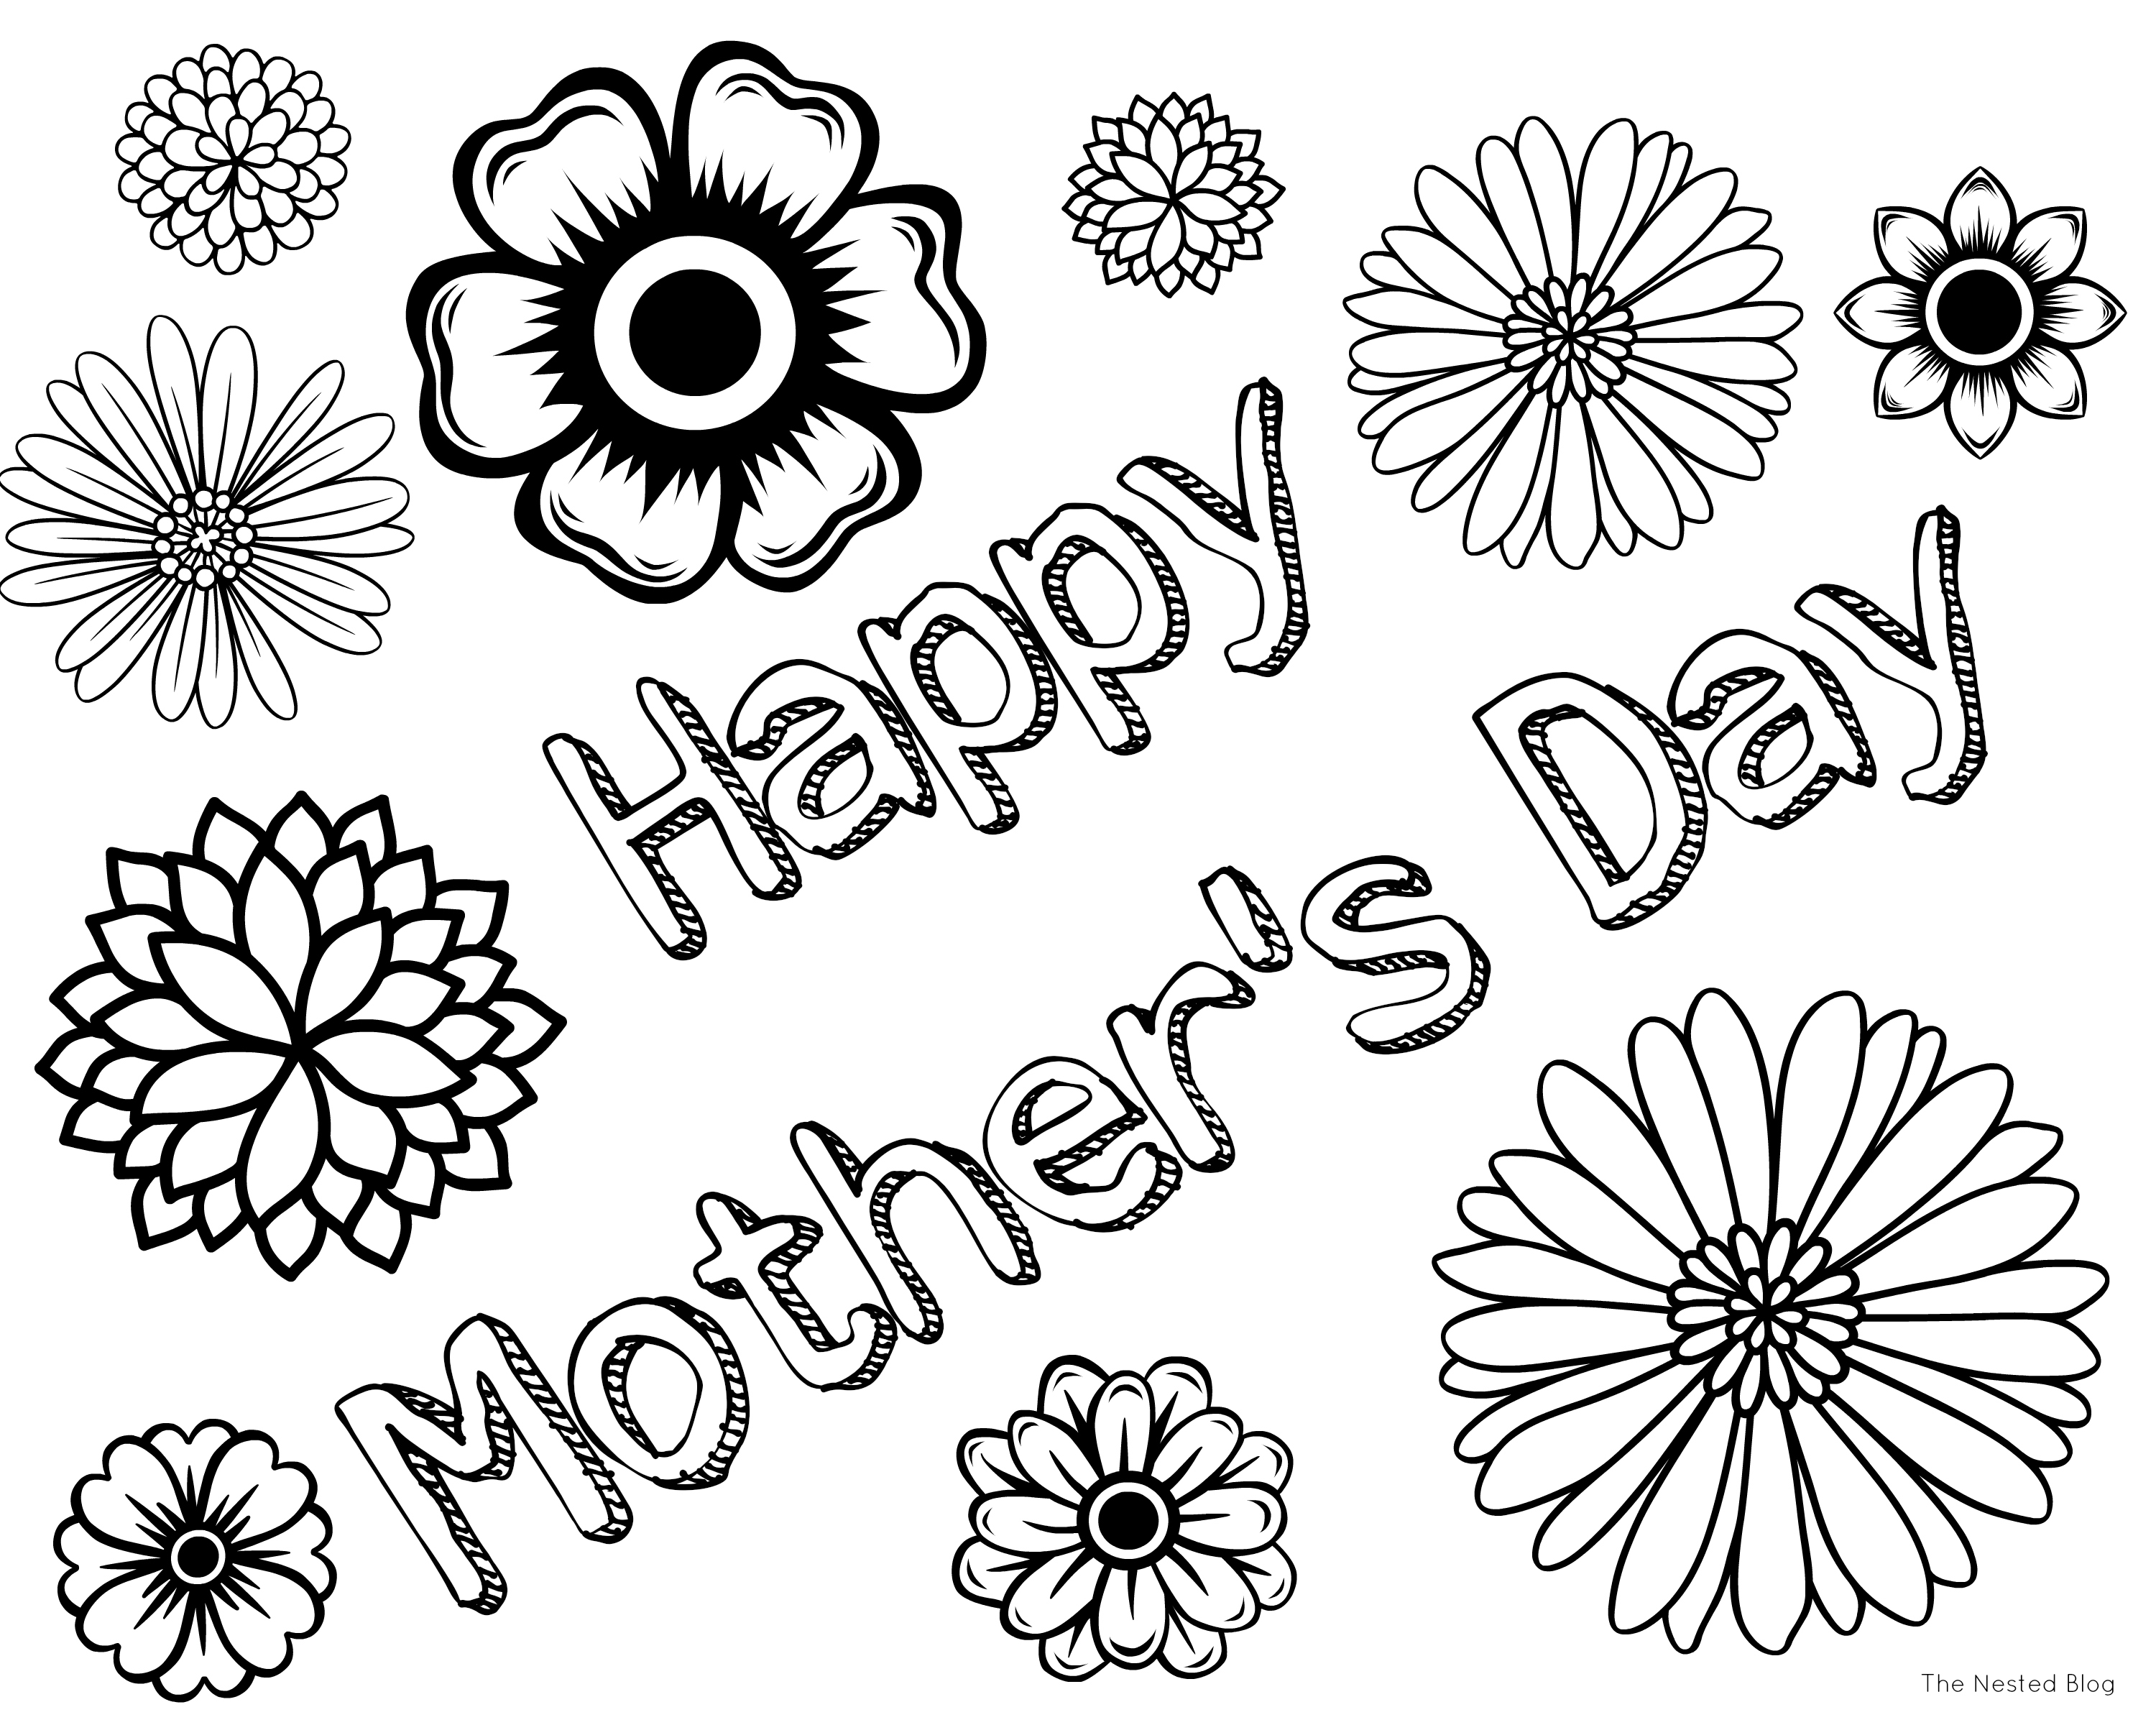 Happy Mothers Day Coloring Pages 2021 Free Printable Mothers Day Coloring Pages 2021